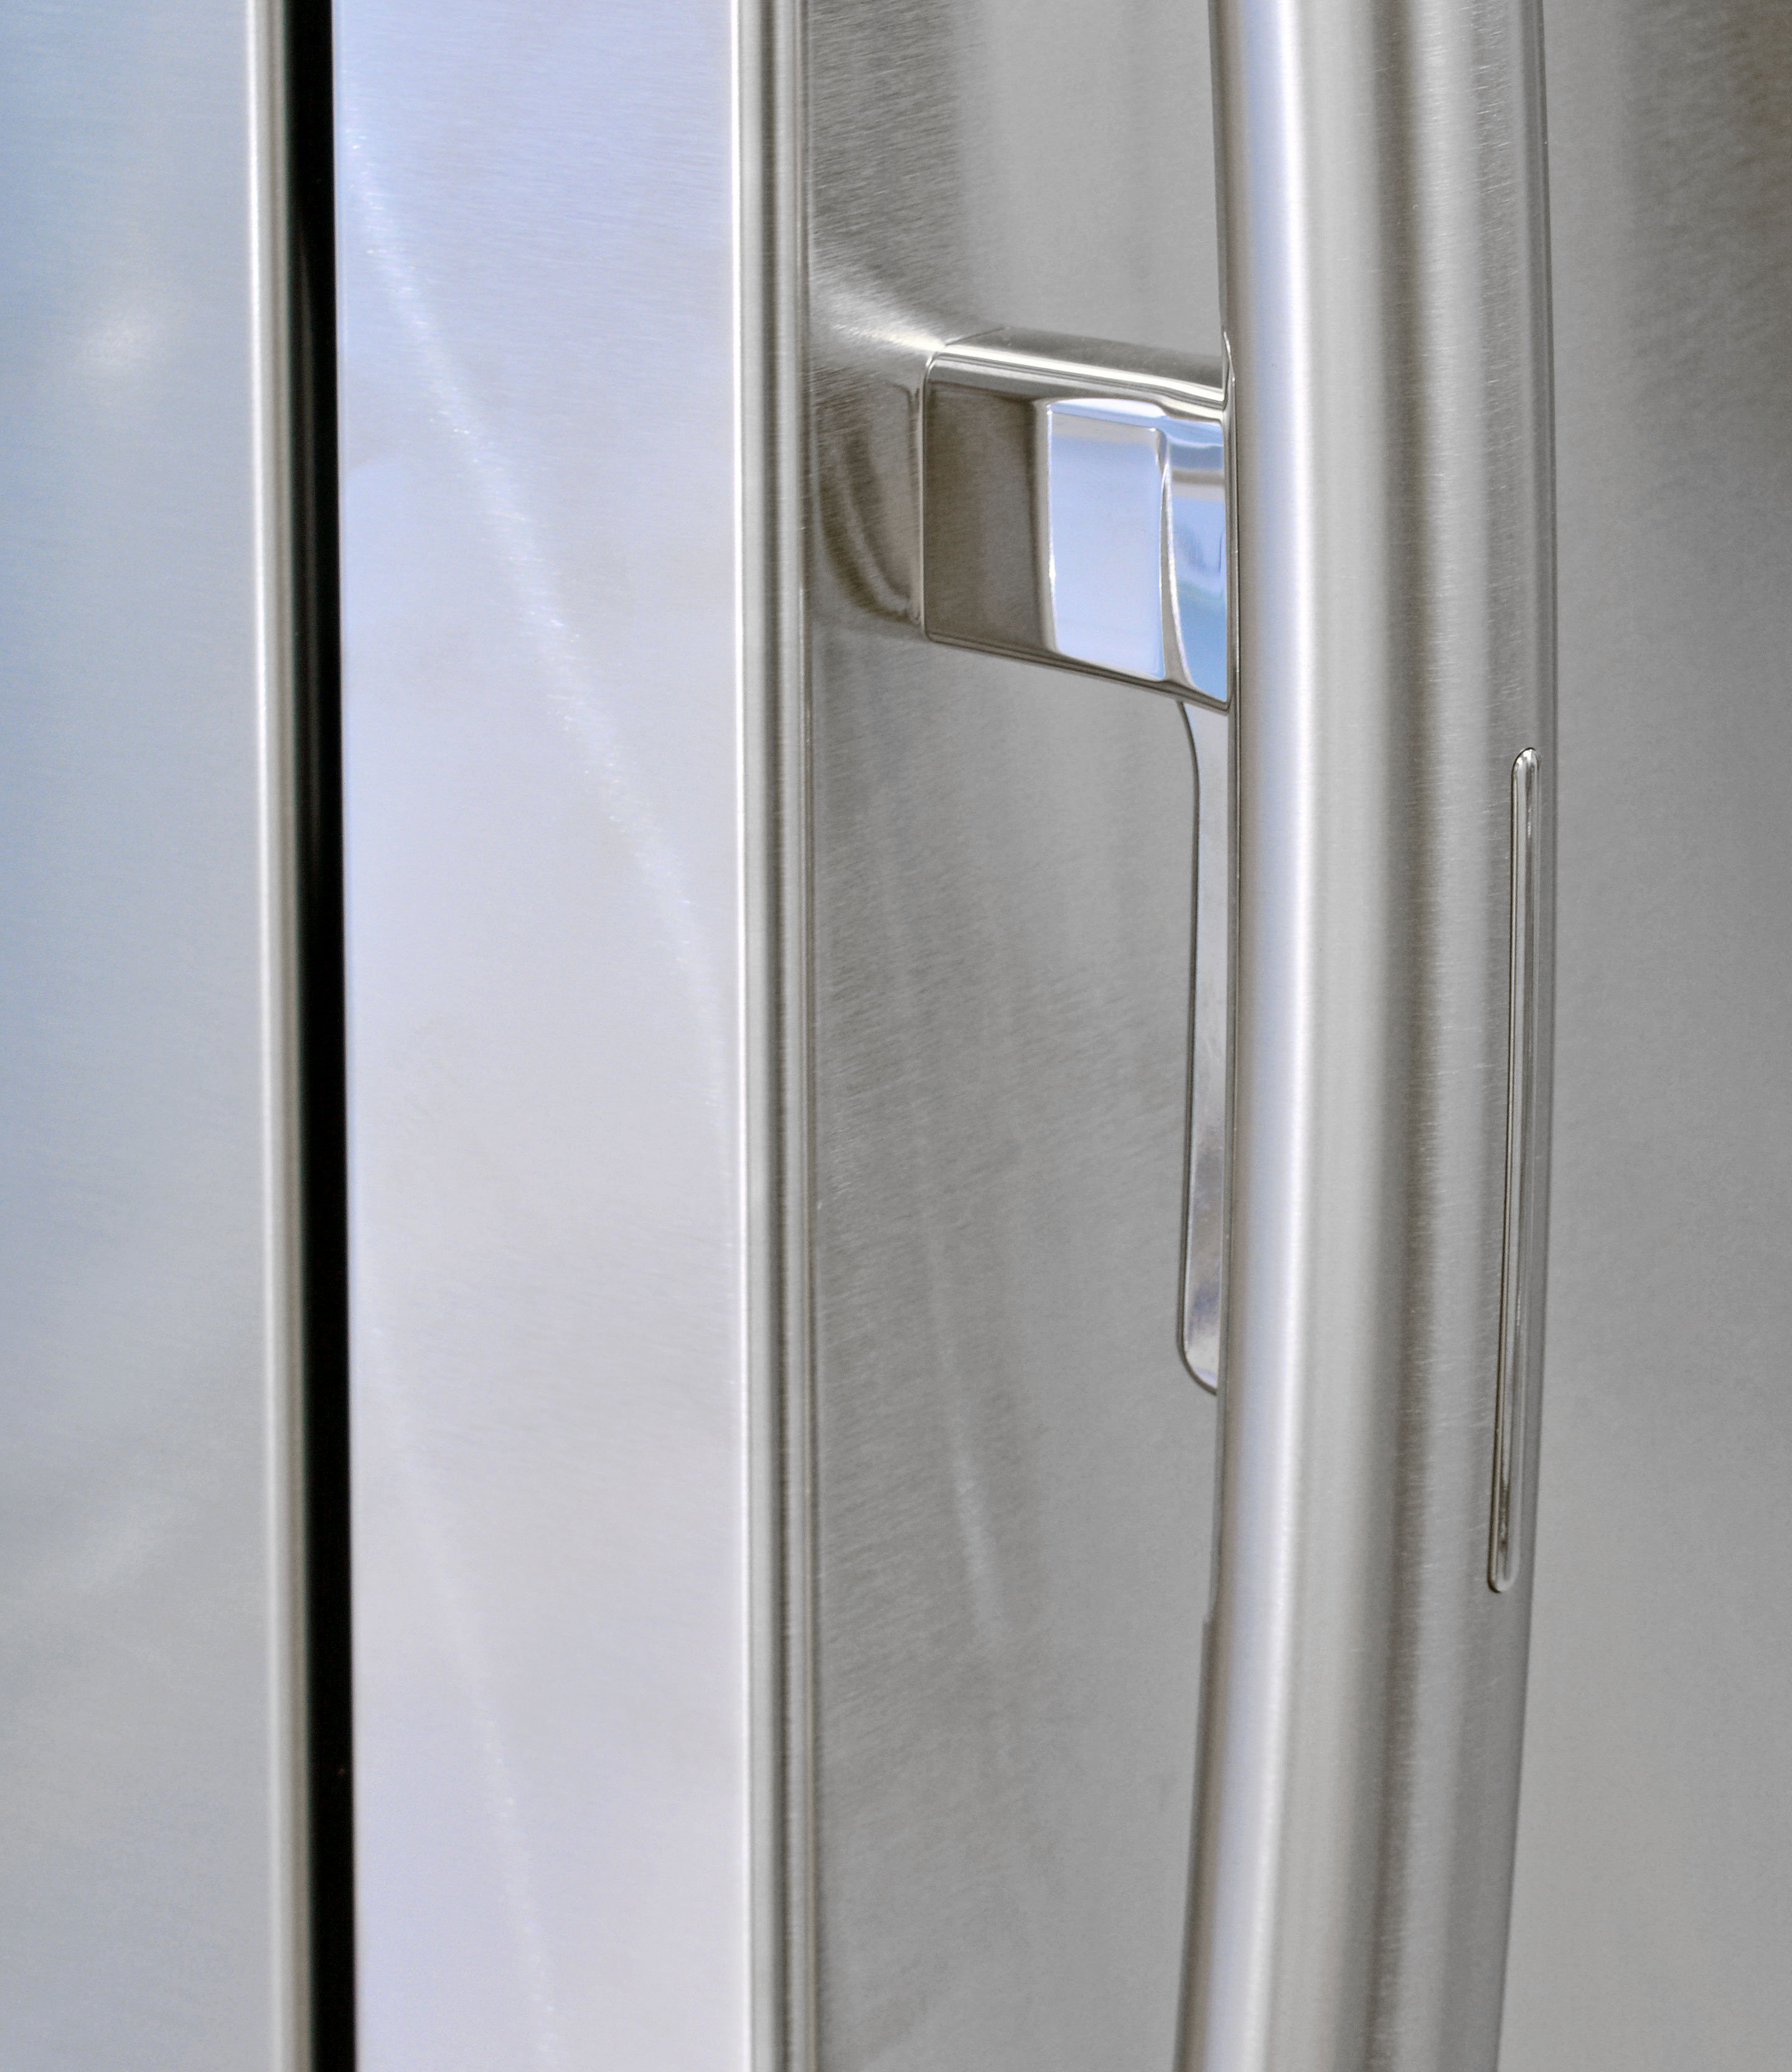 The Samsung RH25H5611SR has traditional curved handles, but with a trigger to release the door-in-door latch.